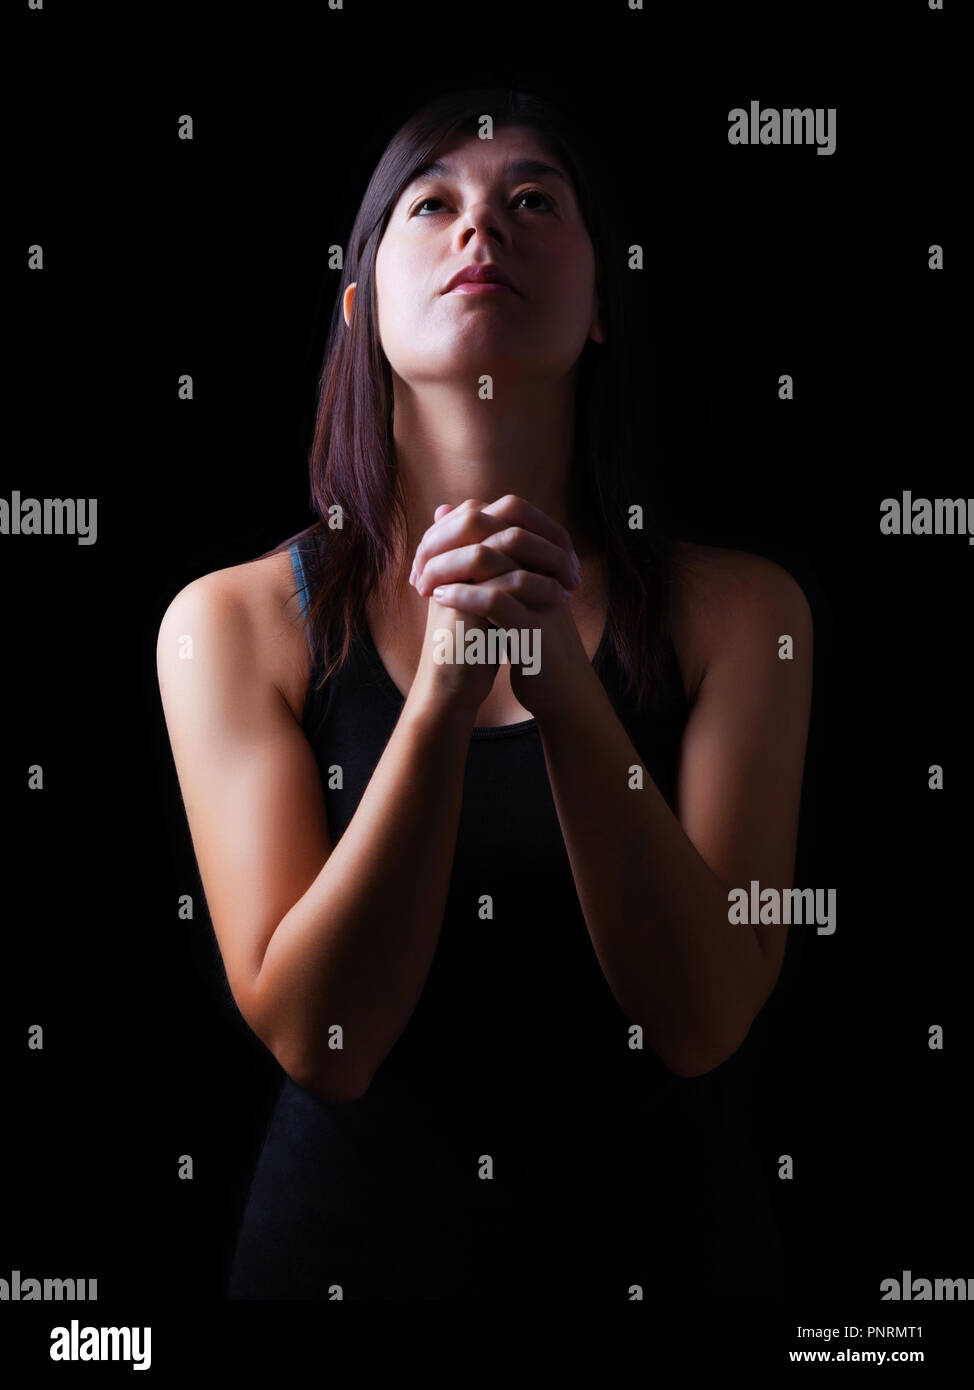 Faithful woman praying, hands folded in worship to god with looking up in religious fervor, on a black background. Concept for religion, faith, prayer - Stock Image